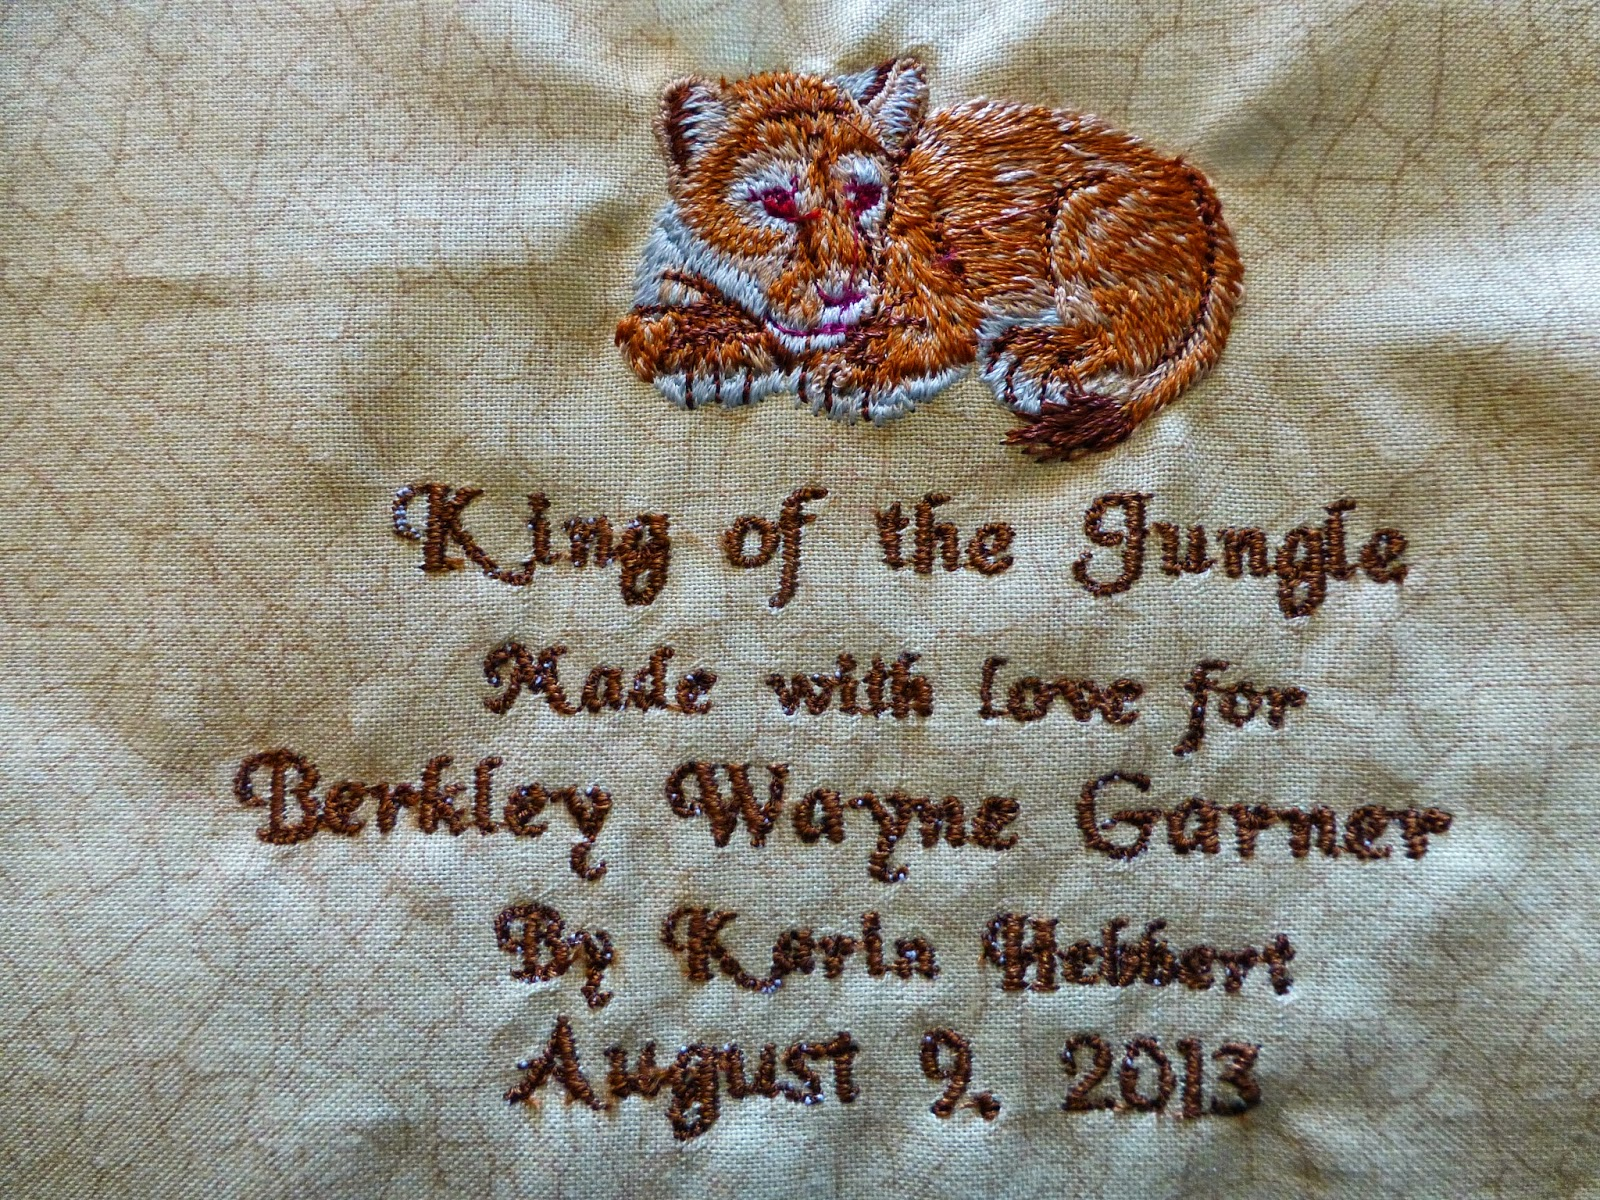 This Label Goes On The Gigantic Western Scrappy Trips Quilt That Is On Our  Bed It Is Our Covered Wagon Quilt, So Named Because A Friend (hi Saska!)  Said It